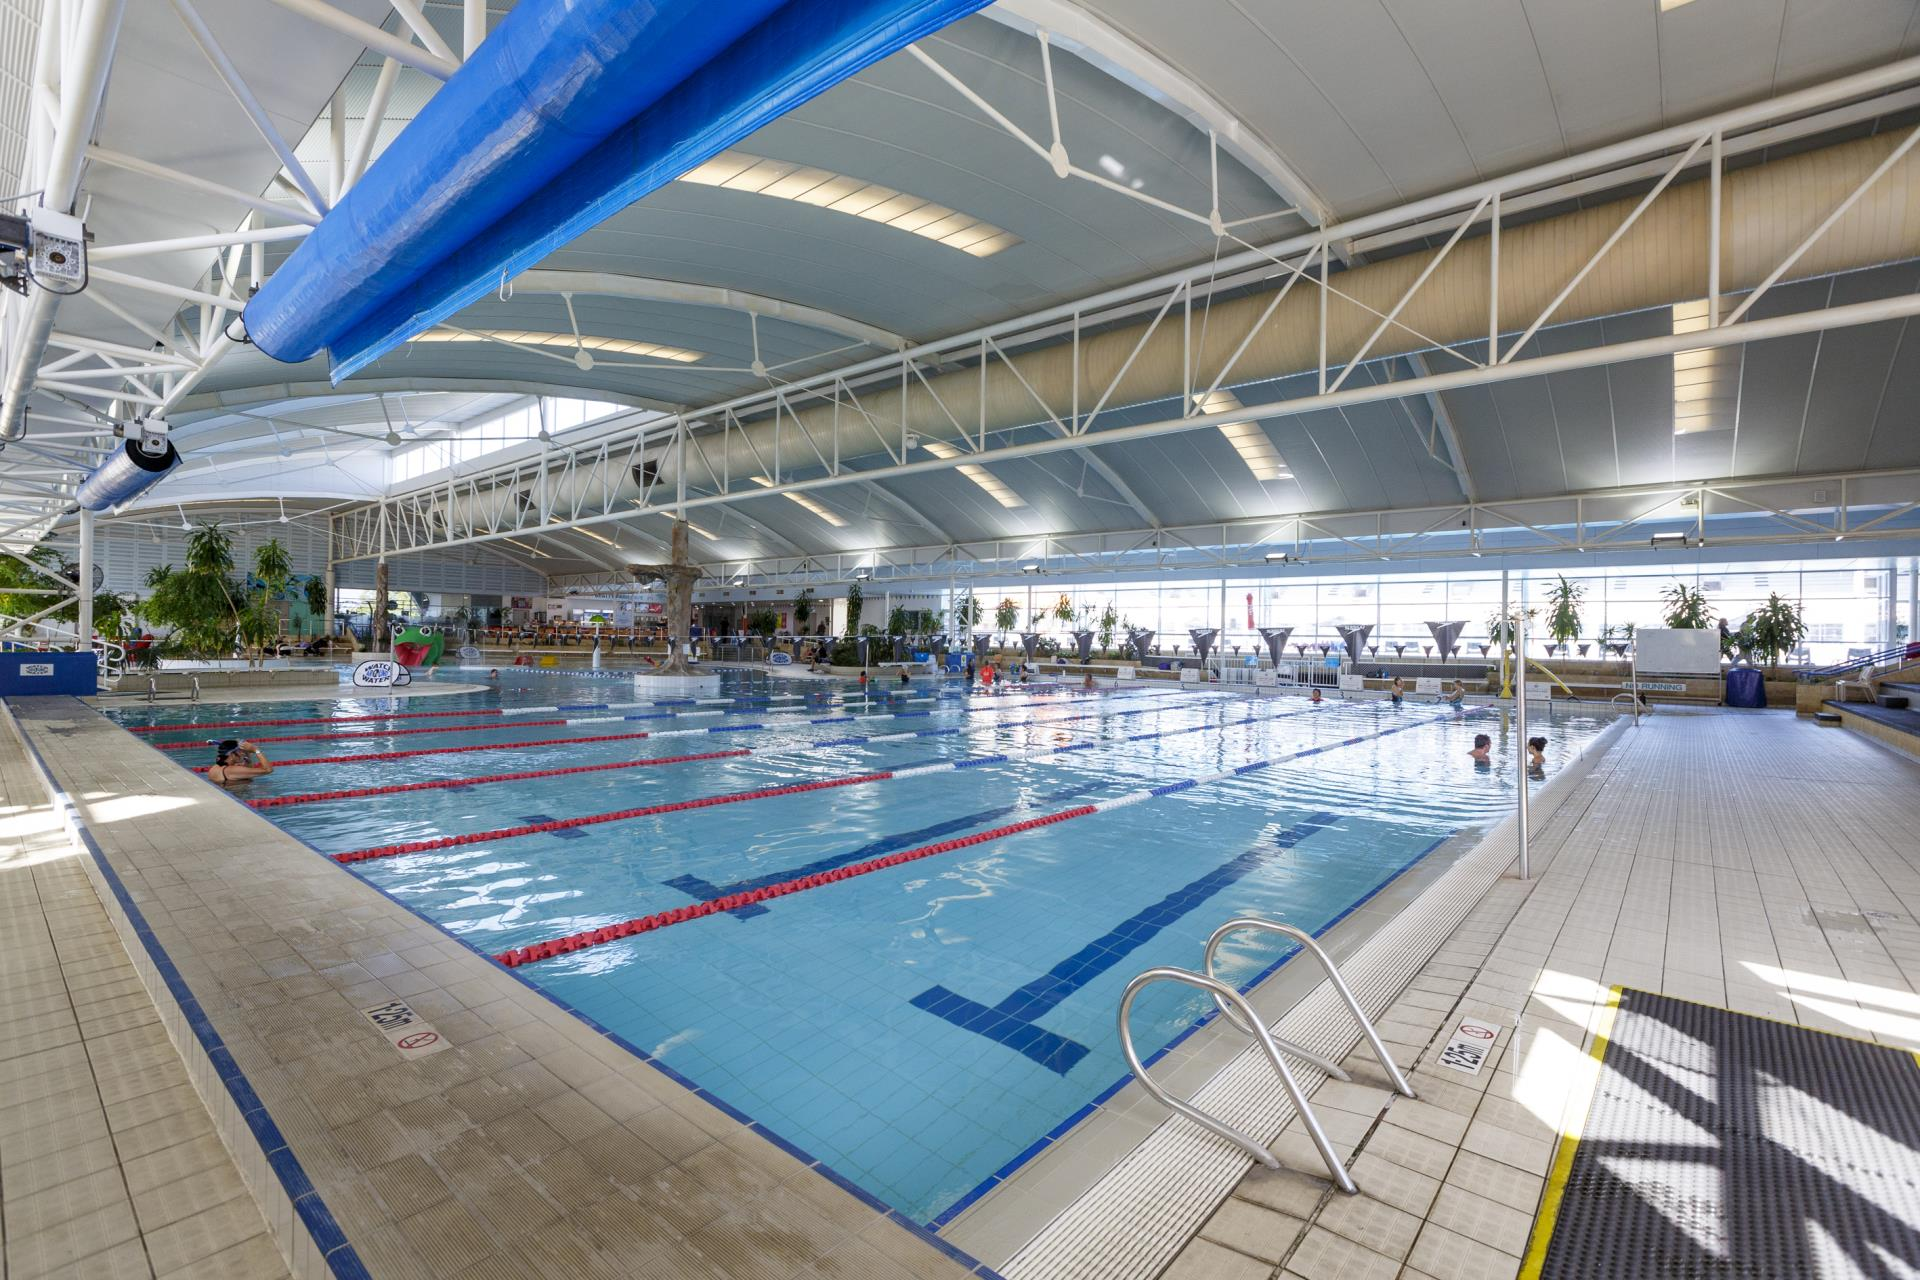 Our pools beatty park leisure centre - Public swimming pools tri cities wa ...